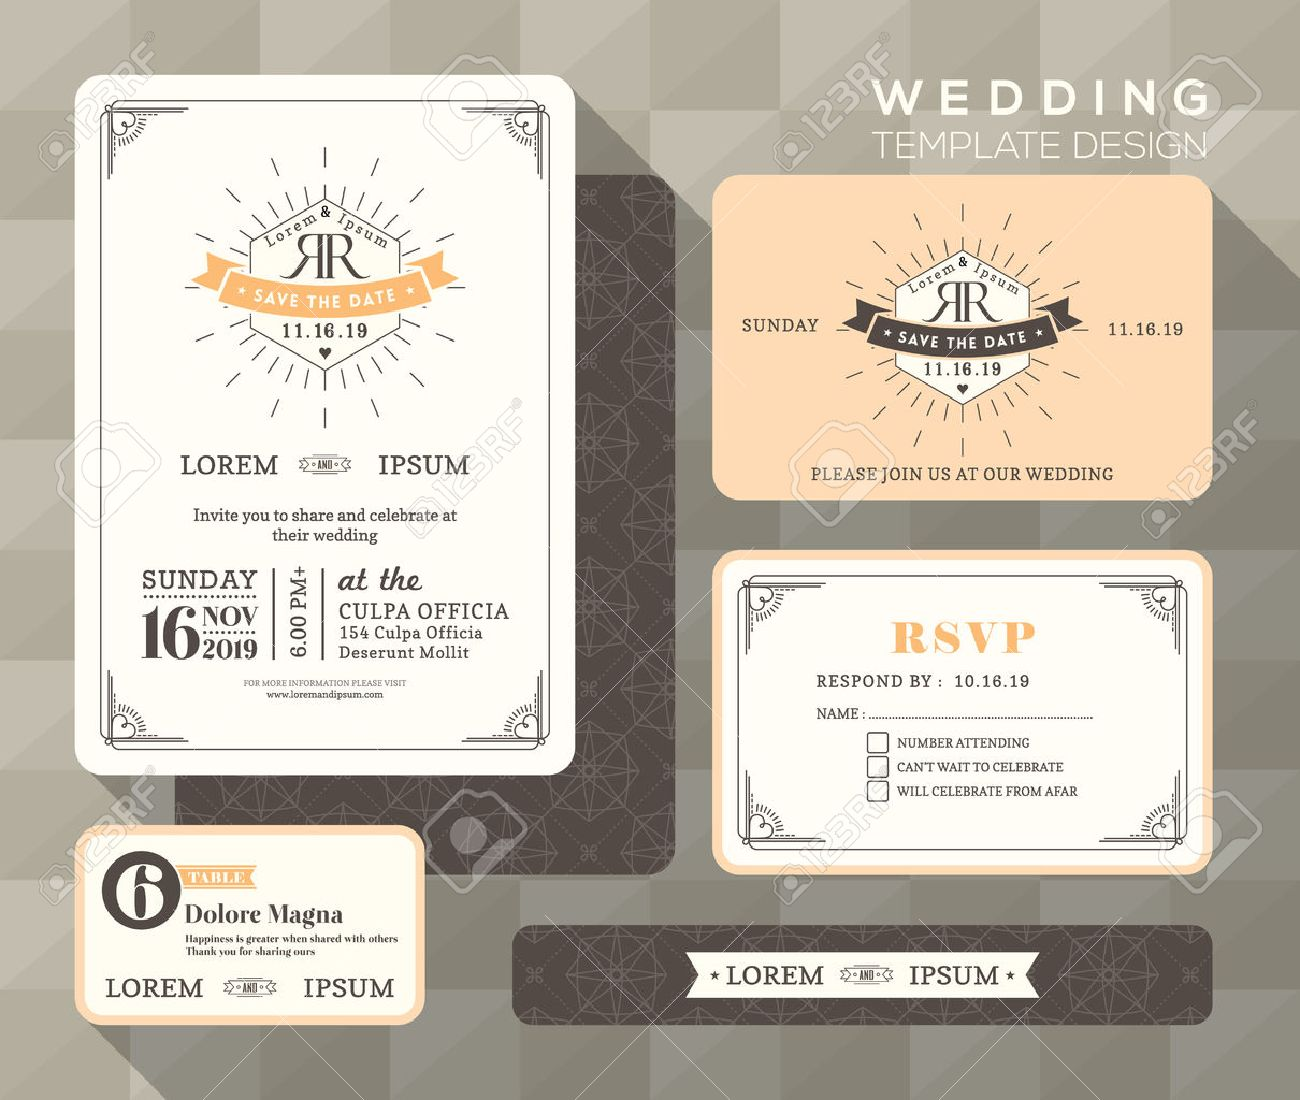 Vintage wedding invitation set design Template Vector place card response card save the date card - 39559140